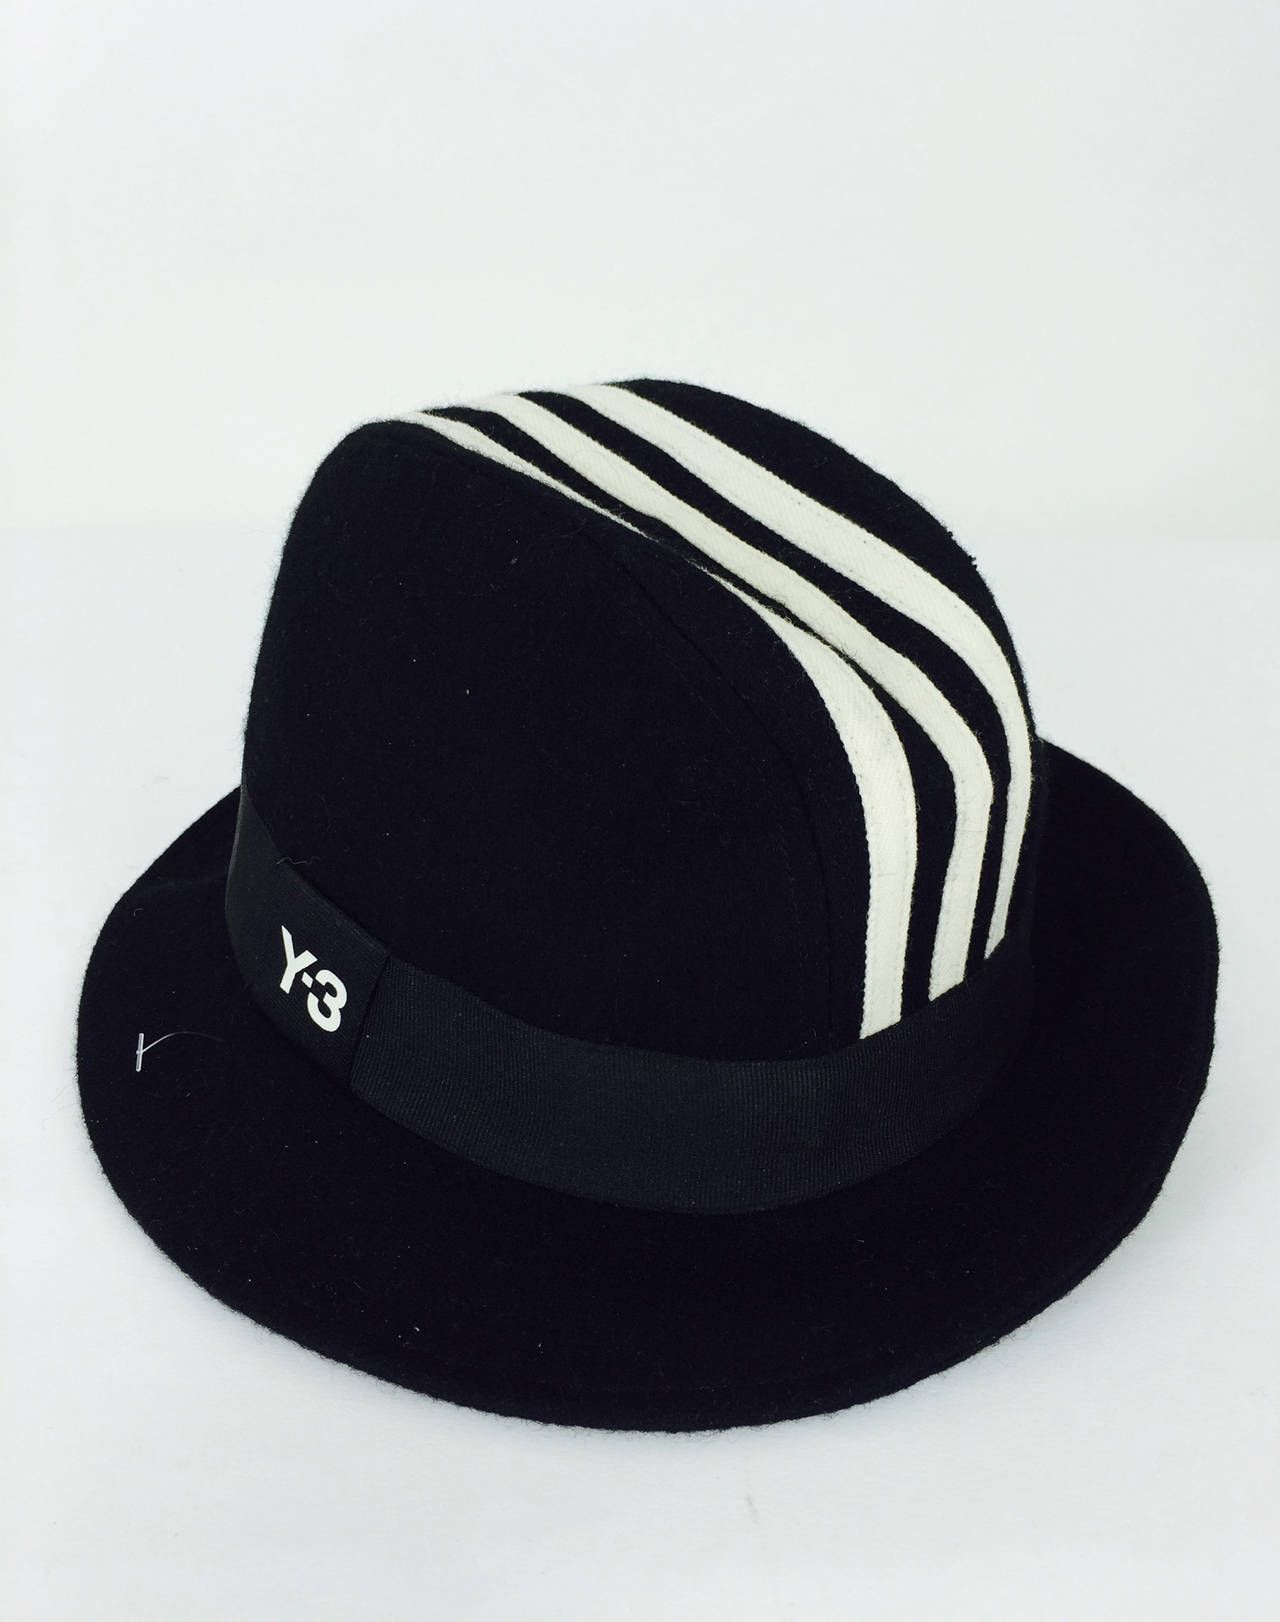 1c661a87e097cd Yohji Yamamoto Y-3 Adidas cashmere blend trilby fedora | From a collection  of rare